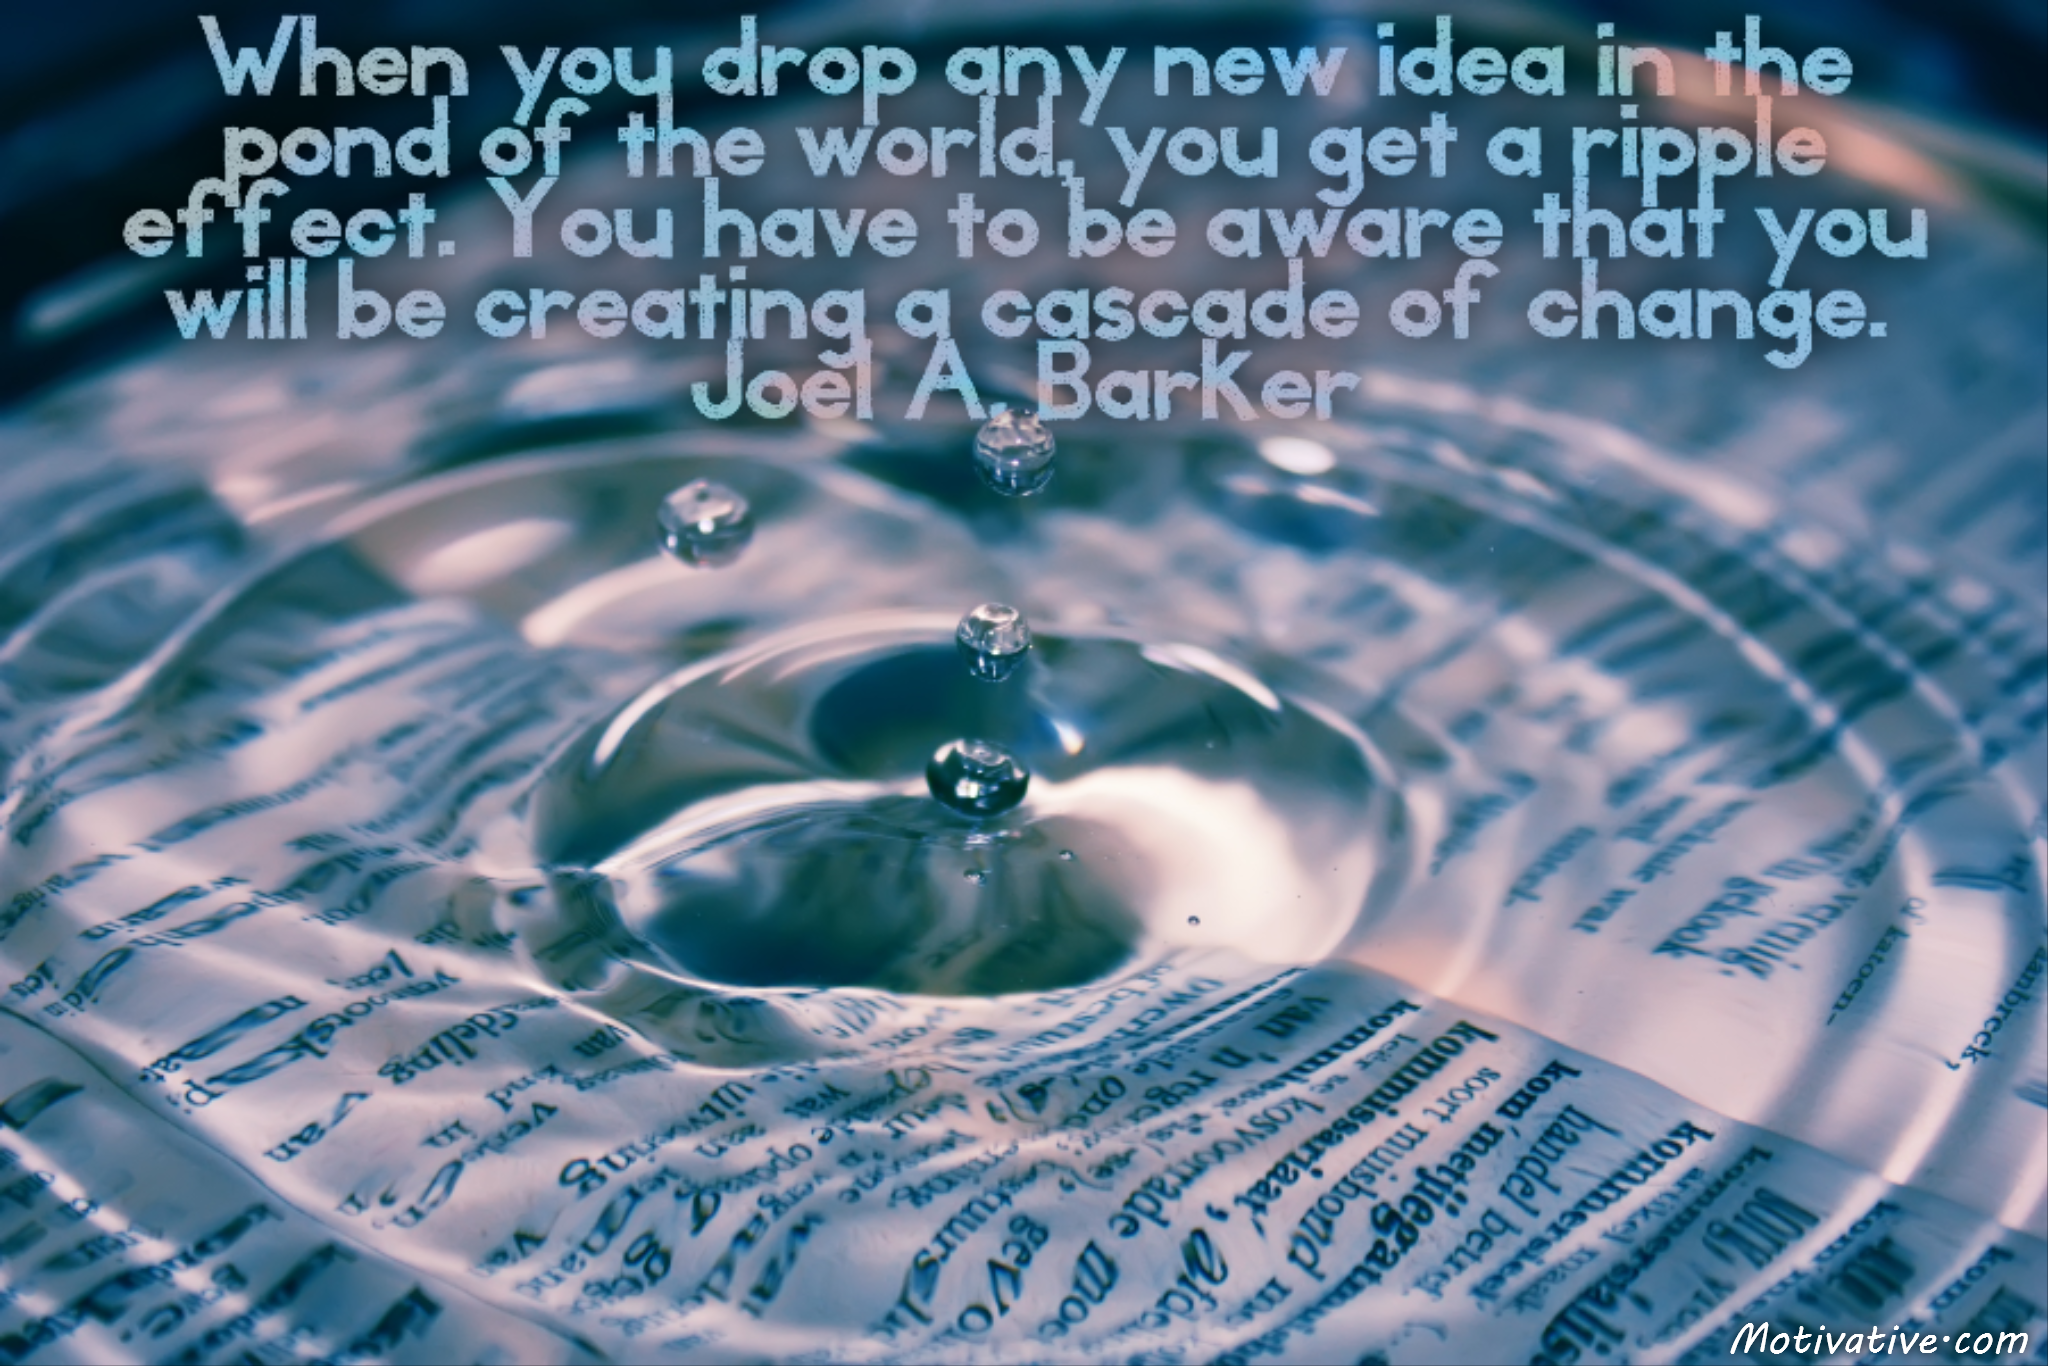 When you drop any new idea in the pond of the world, you get a ripple effect. You have to be aware that you will be creating a cascade of change.  – Joel A. Barker